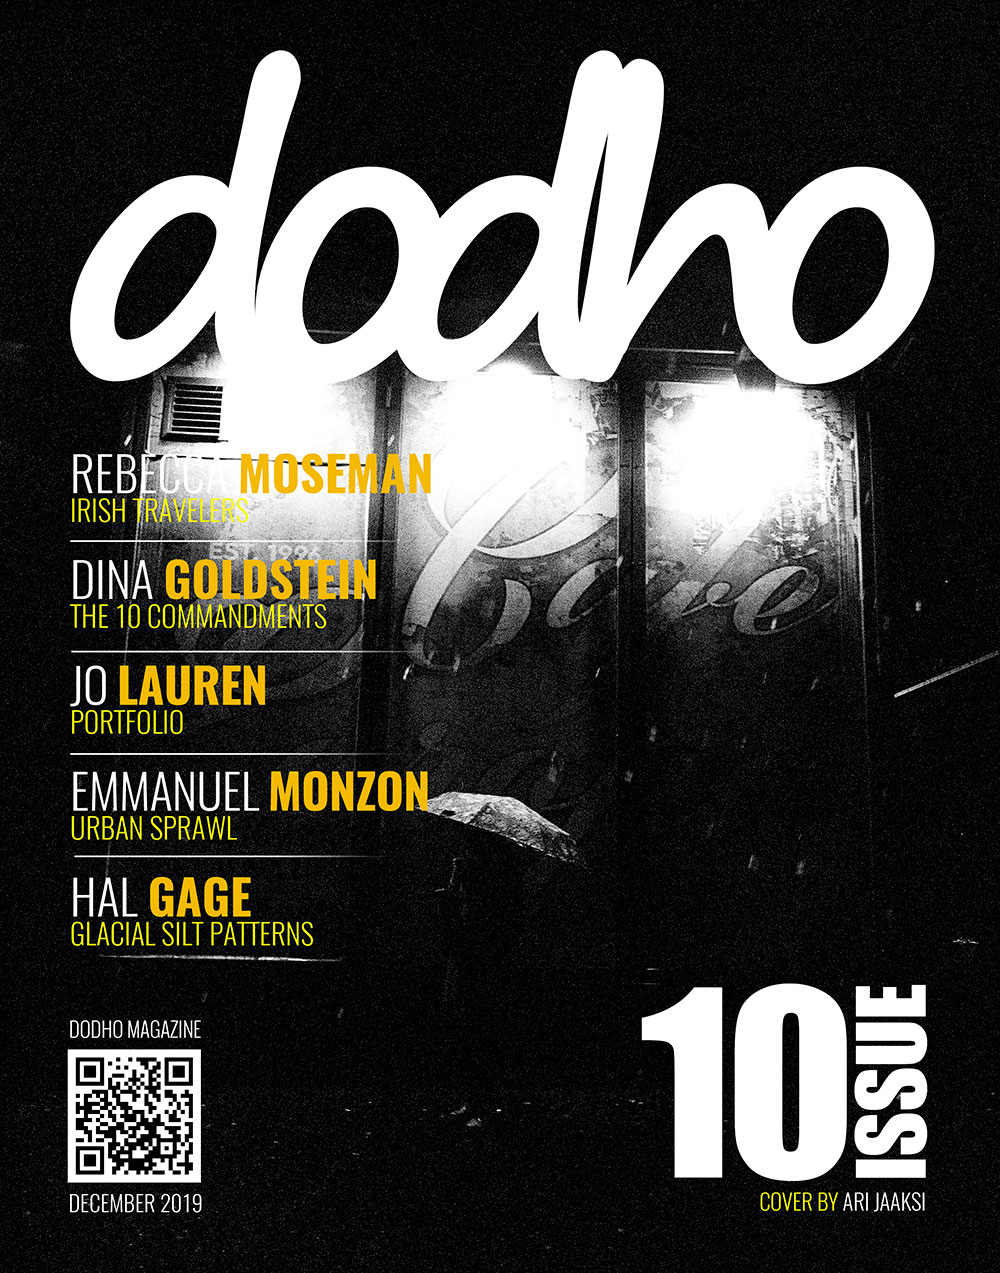 https://www.dodho.com/wp-content/uploads/2019/12/cover10.jpg